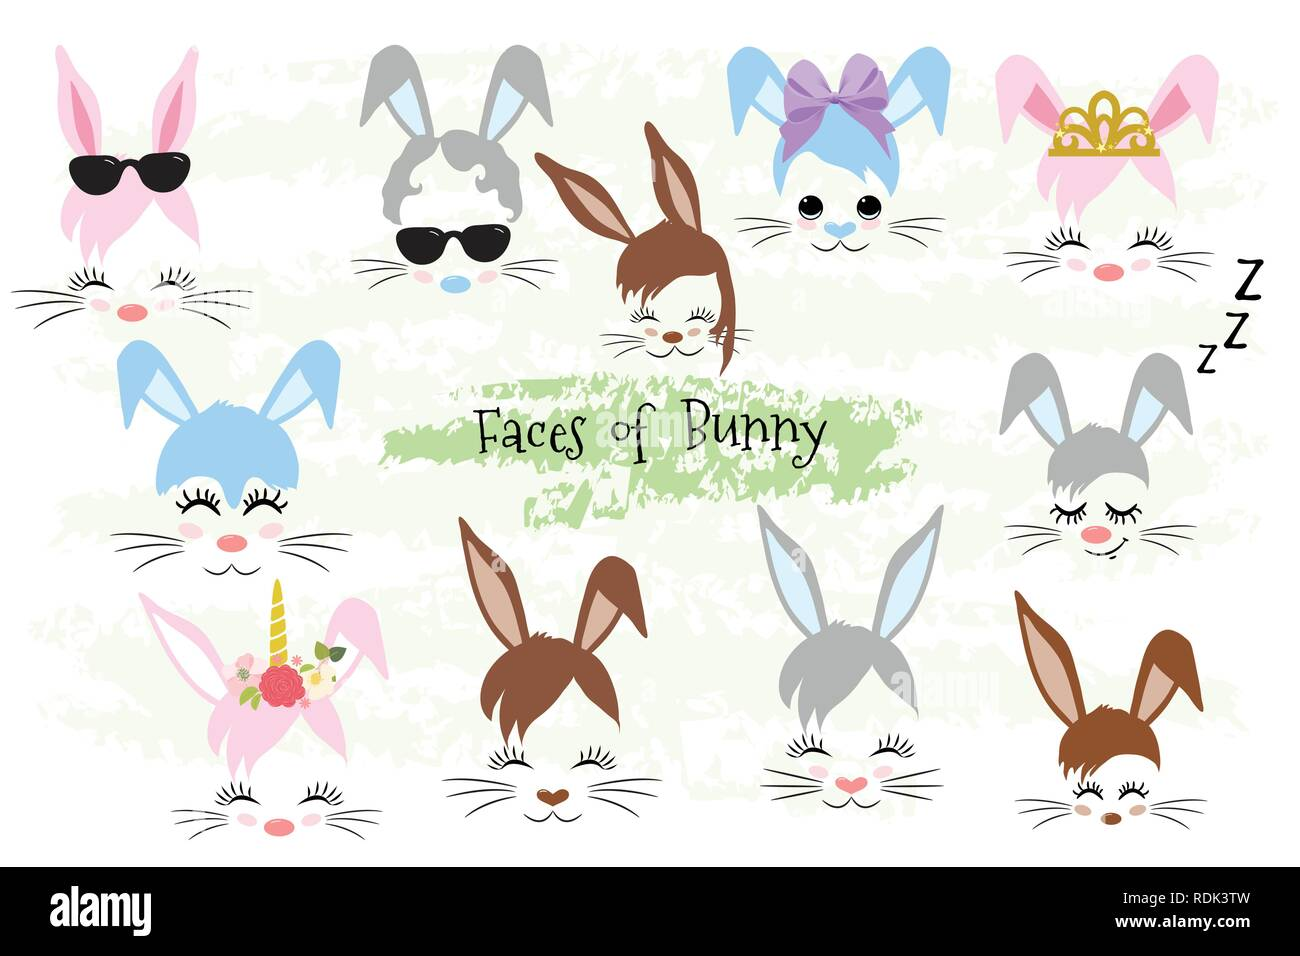 hight resolution of happy easter bunny face clipart easter gift